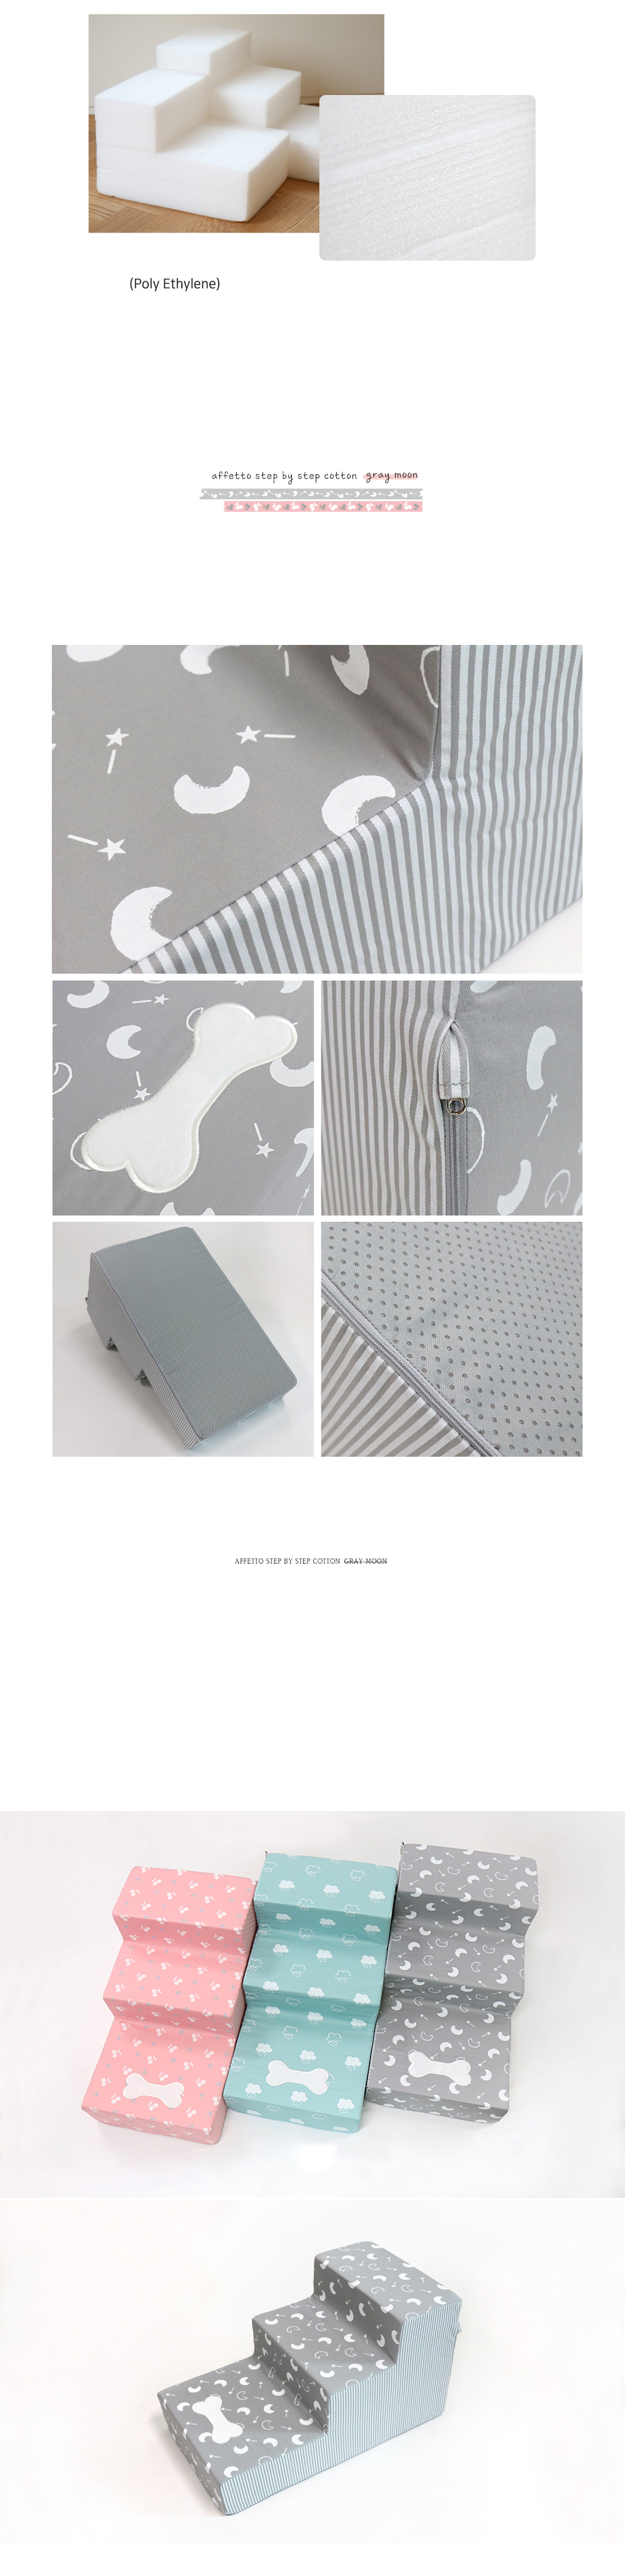 cotton-gray3step-02.jpg